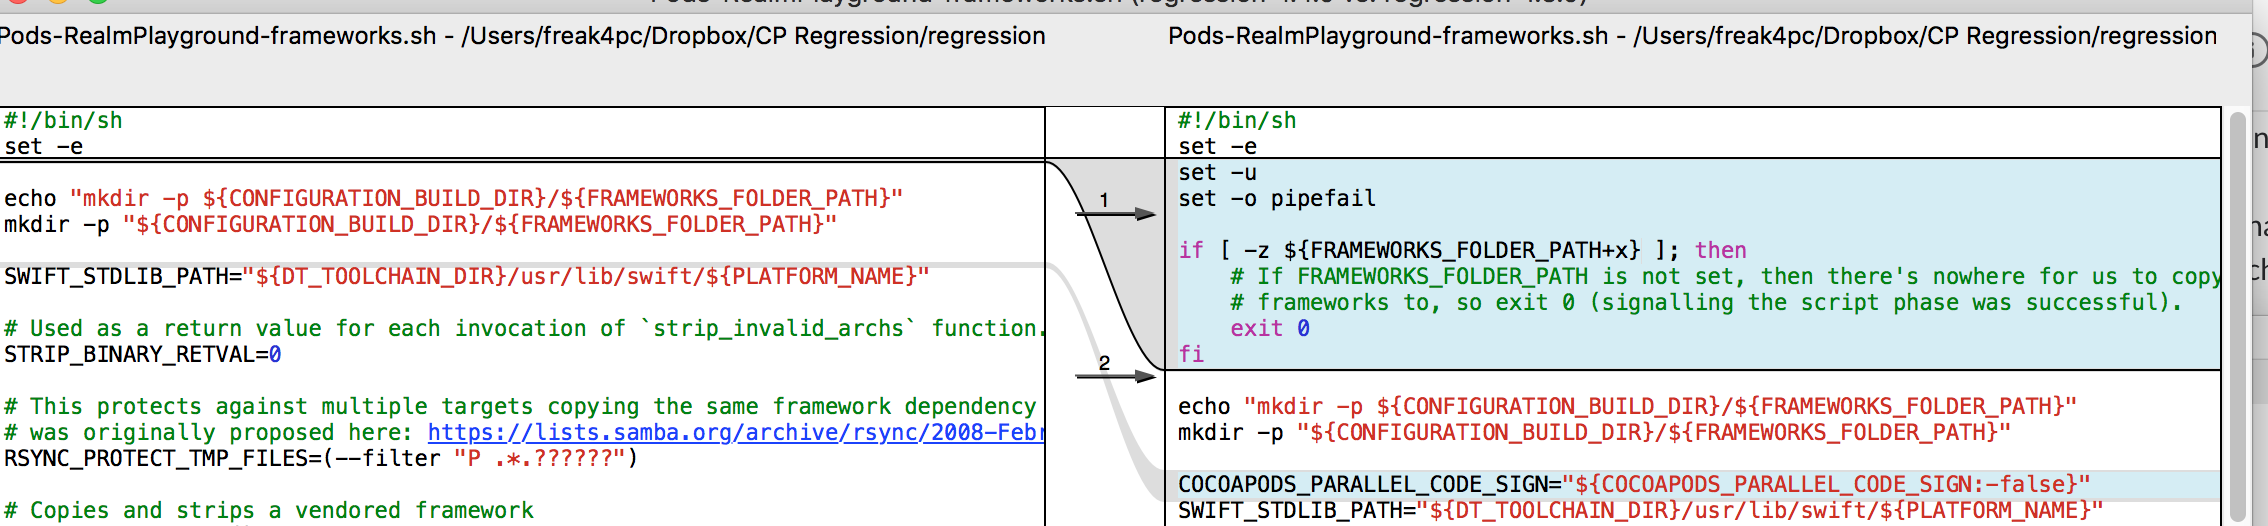 Playgrounds regression between CocoaPods 1 4 0 and CocoaPods 1 5 0